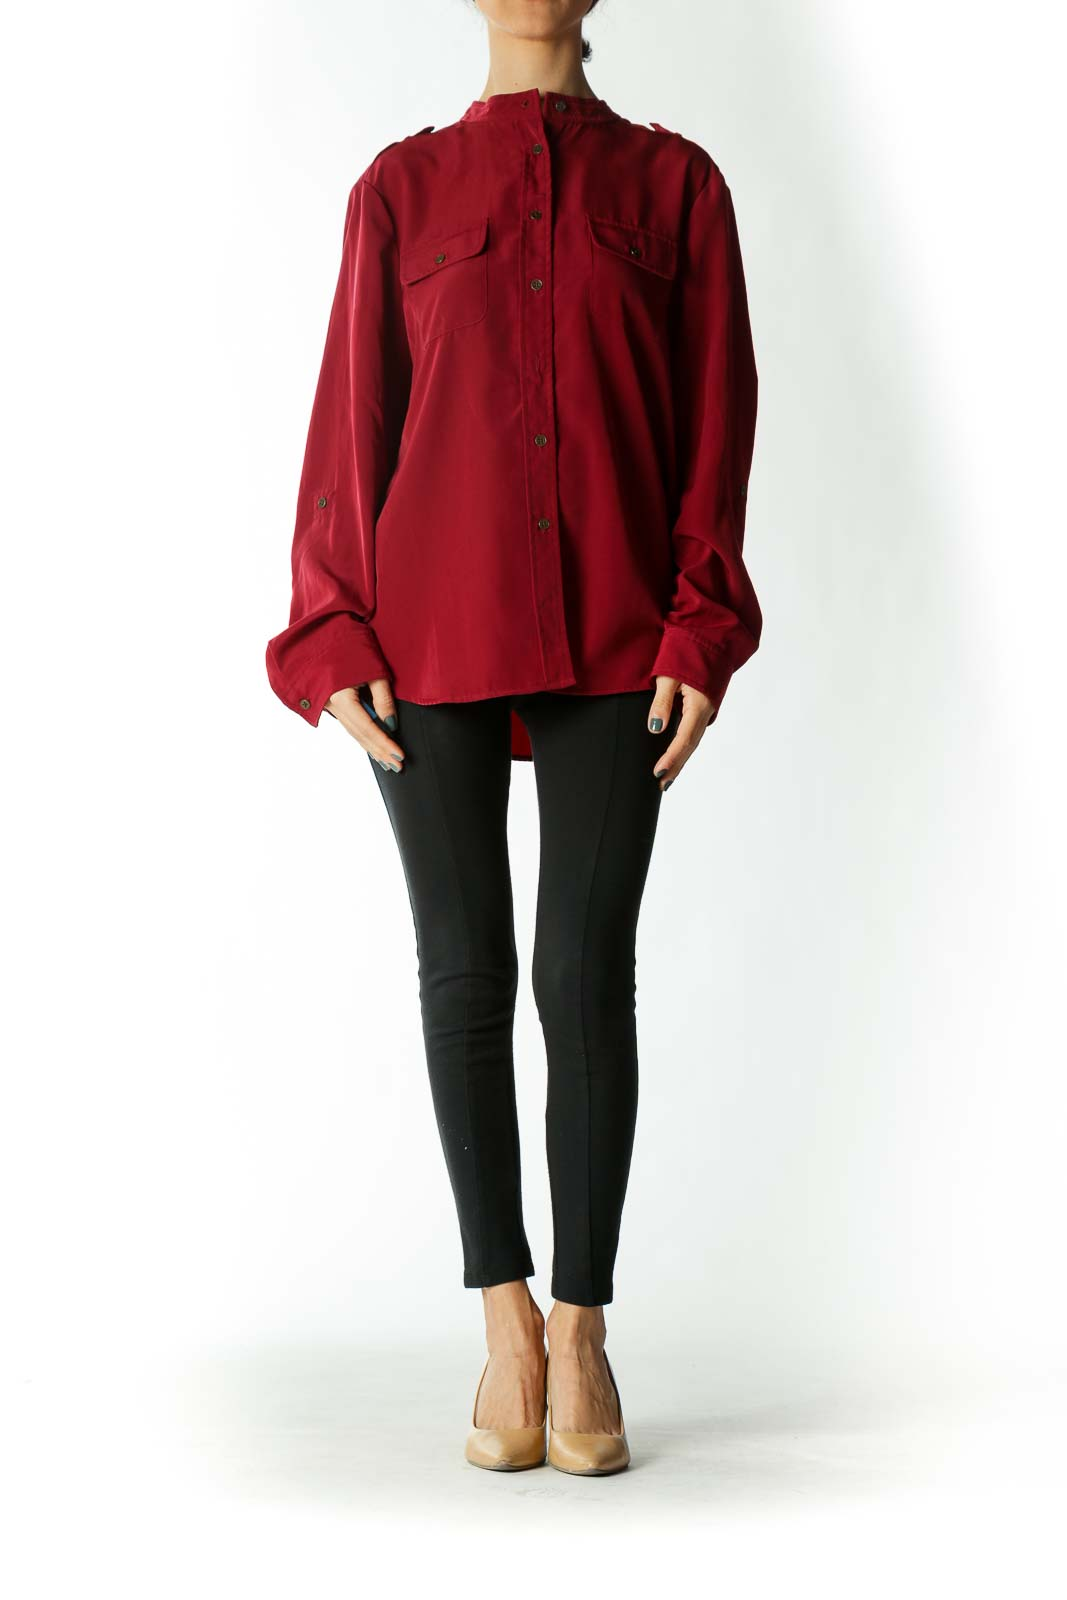 Burgundy Button Down Blouse With Shoulder Epaulettes